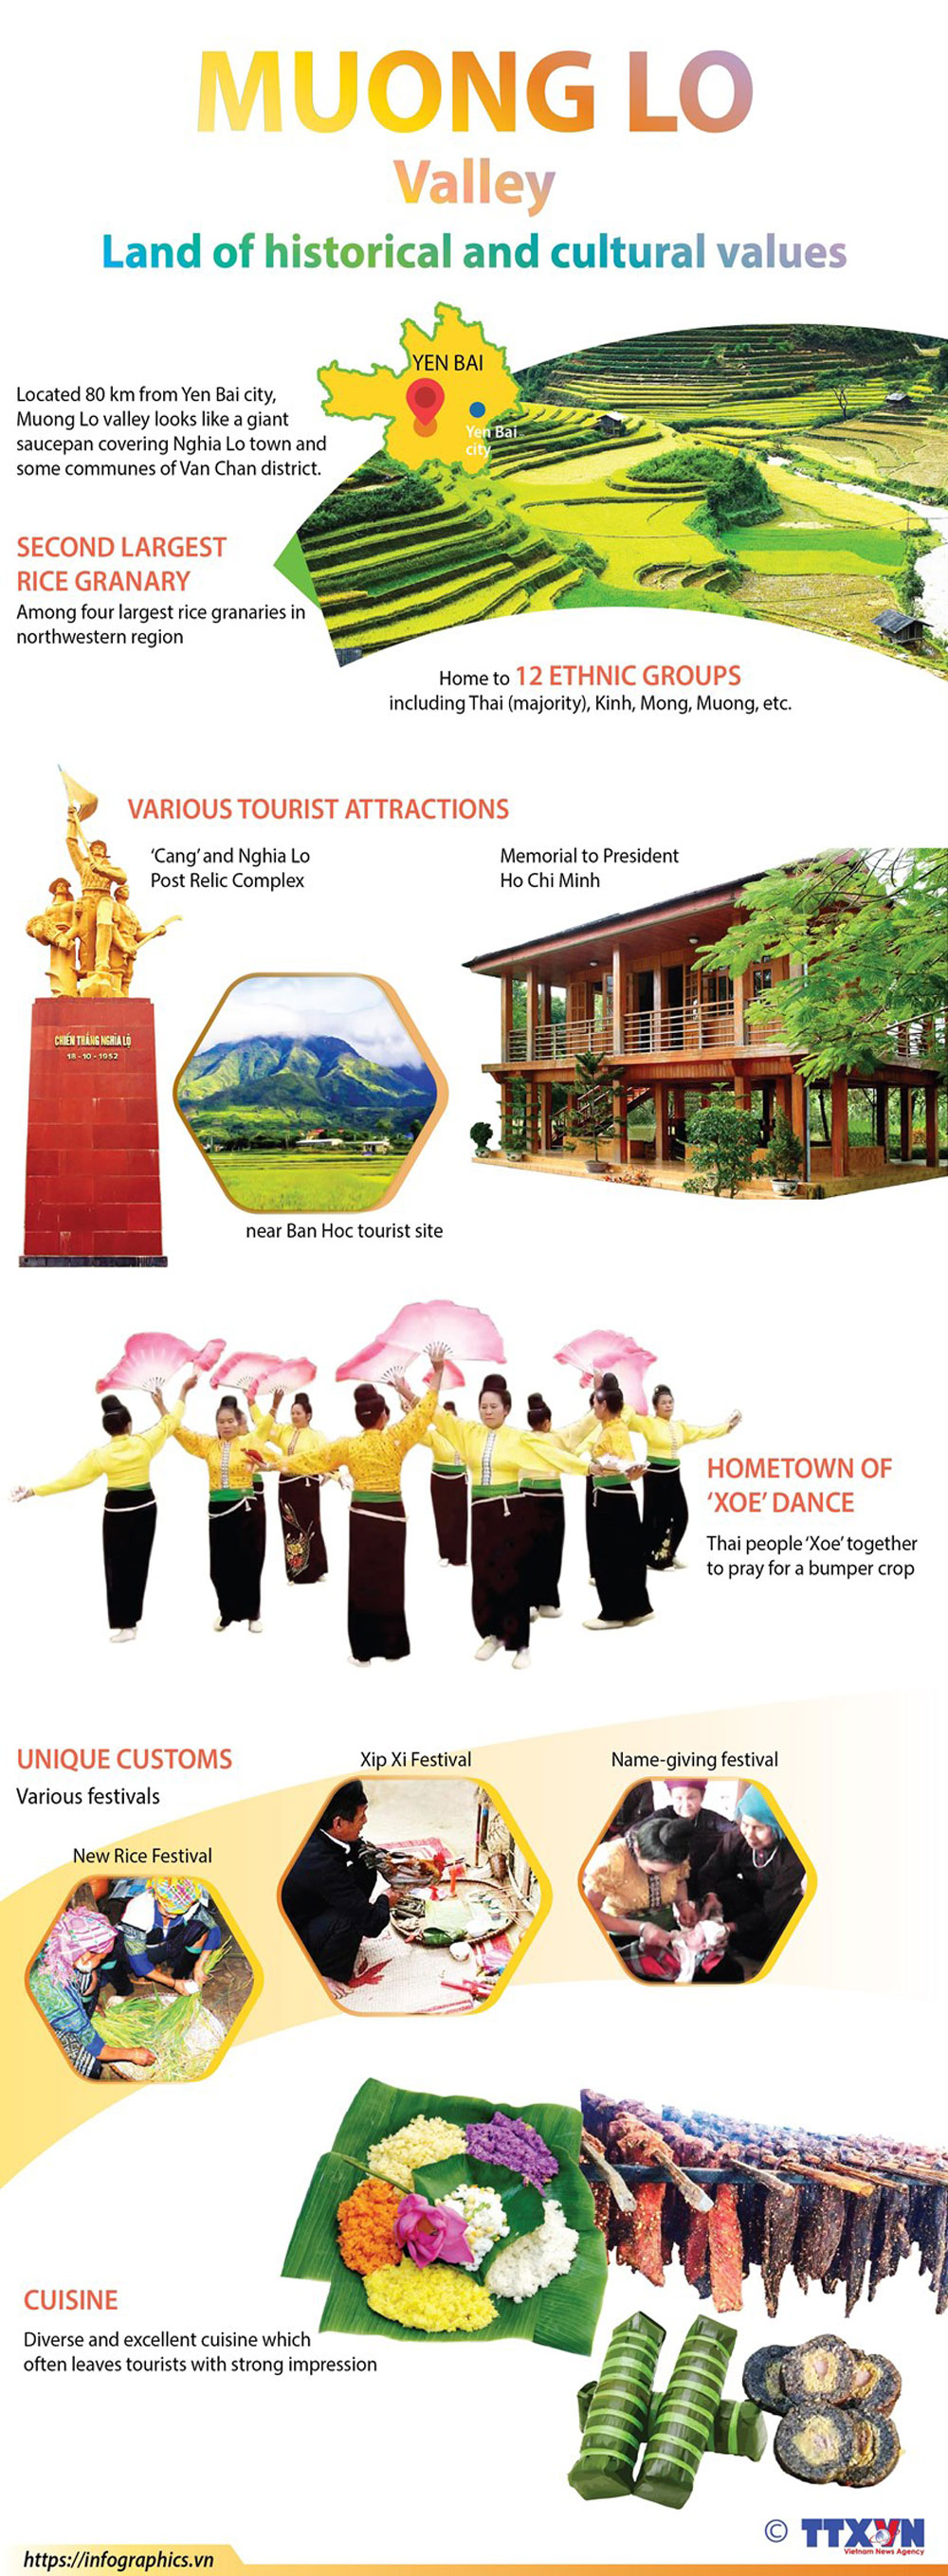 Muong Lo valley, historical and cultural values, Yen Bai city, Muong Lo festival